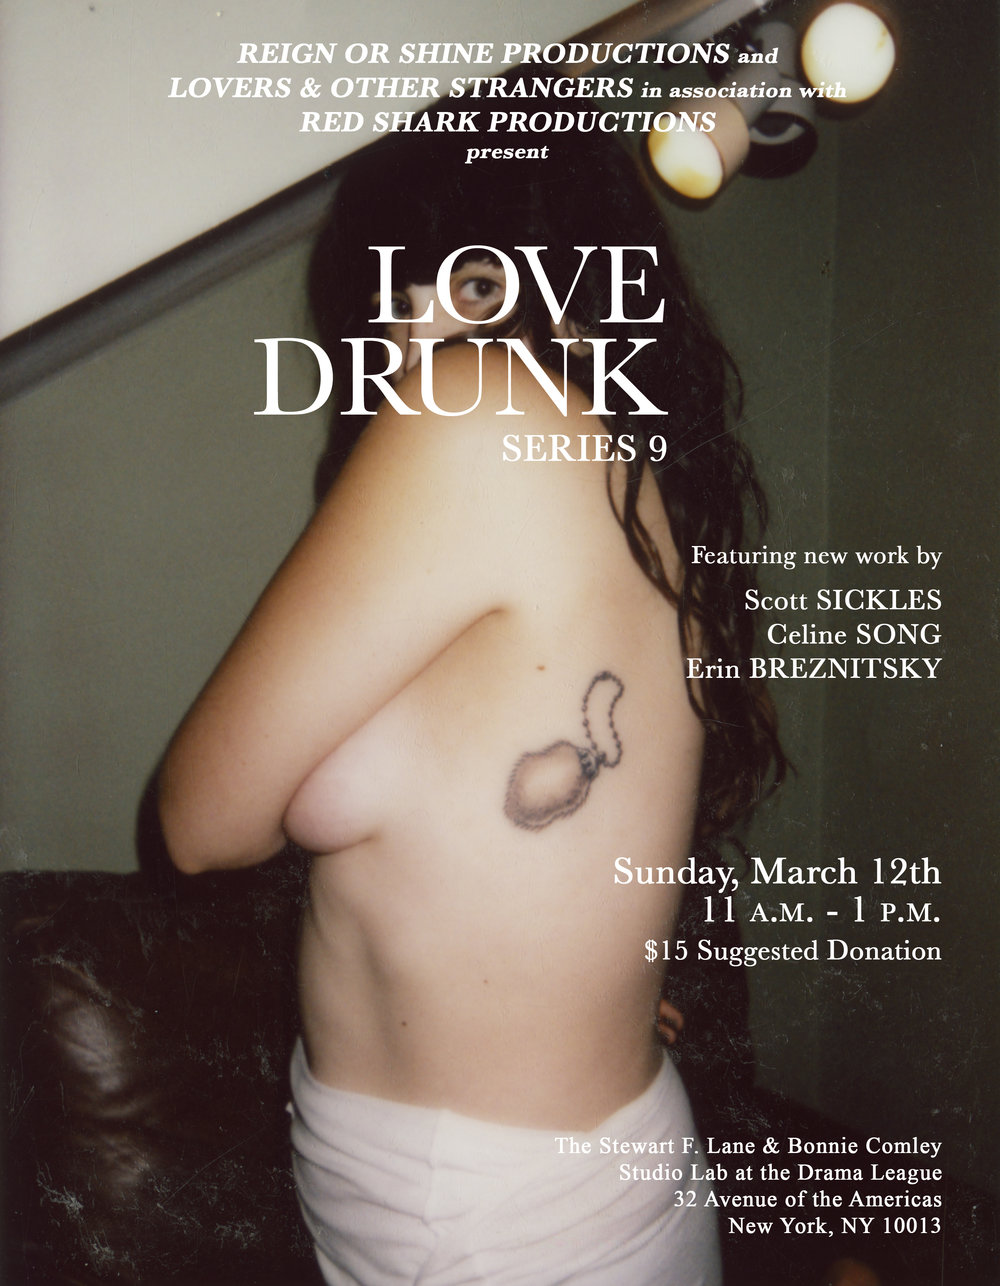 Love Drunk Series 9